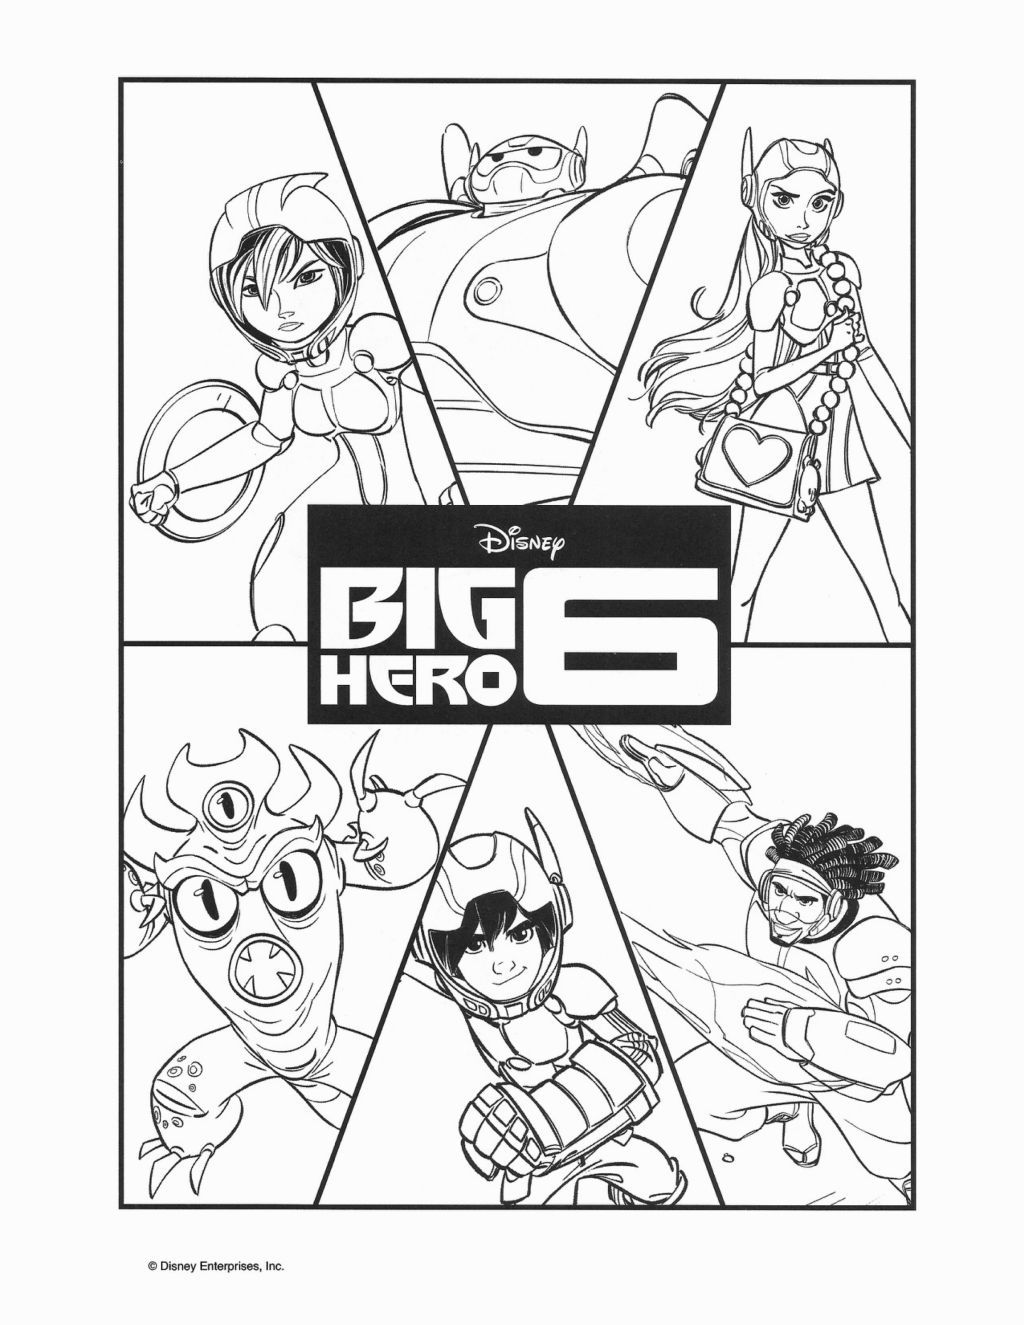 Have Fun Coloring This Amazing Disney Big Hero 6 Page Here Are The Characters Baymax Hiro GoGo Tomago Wasabi Honey Lemon And Fred